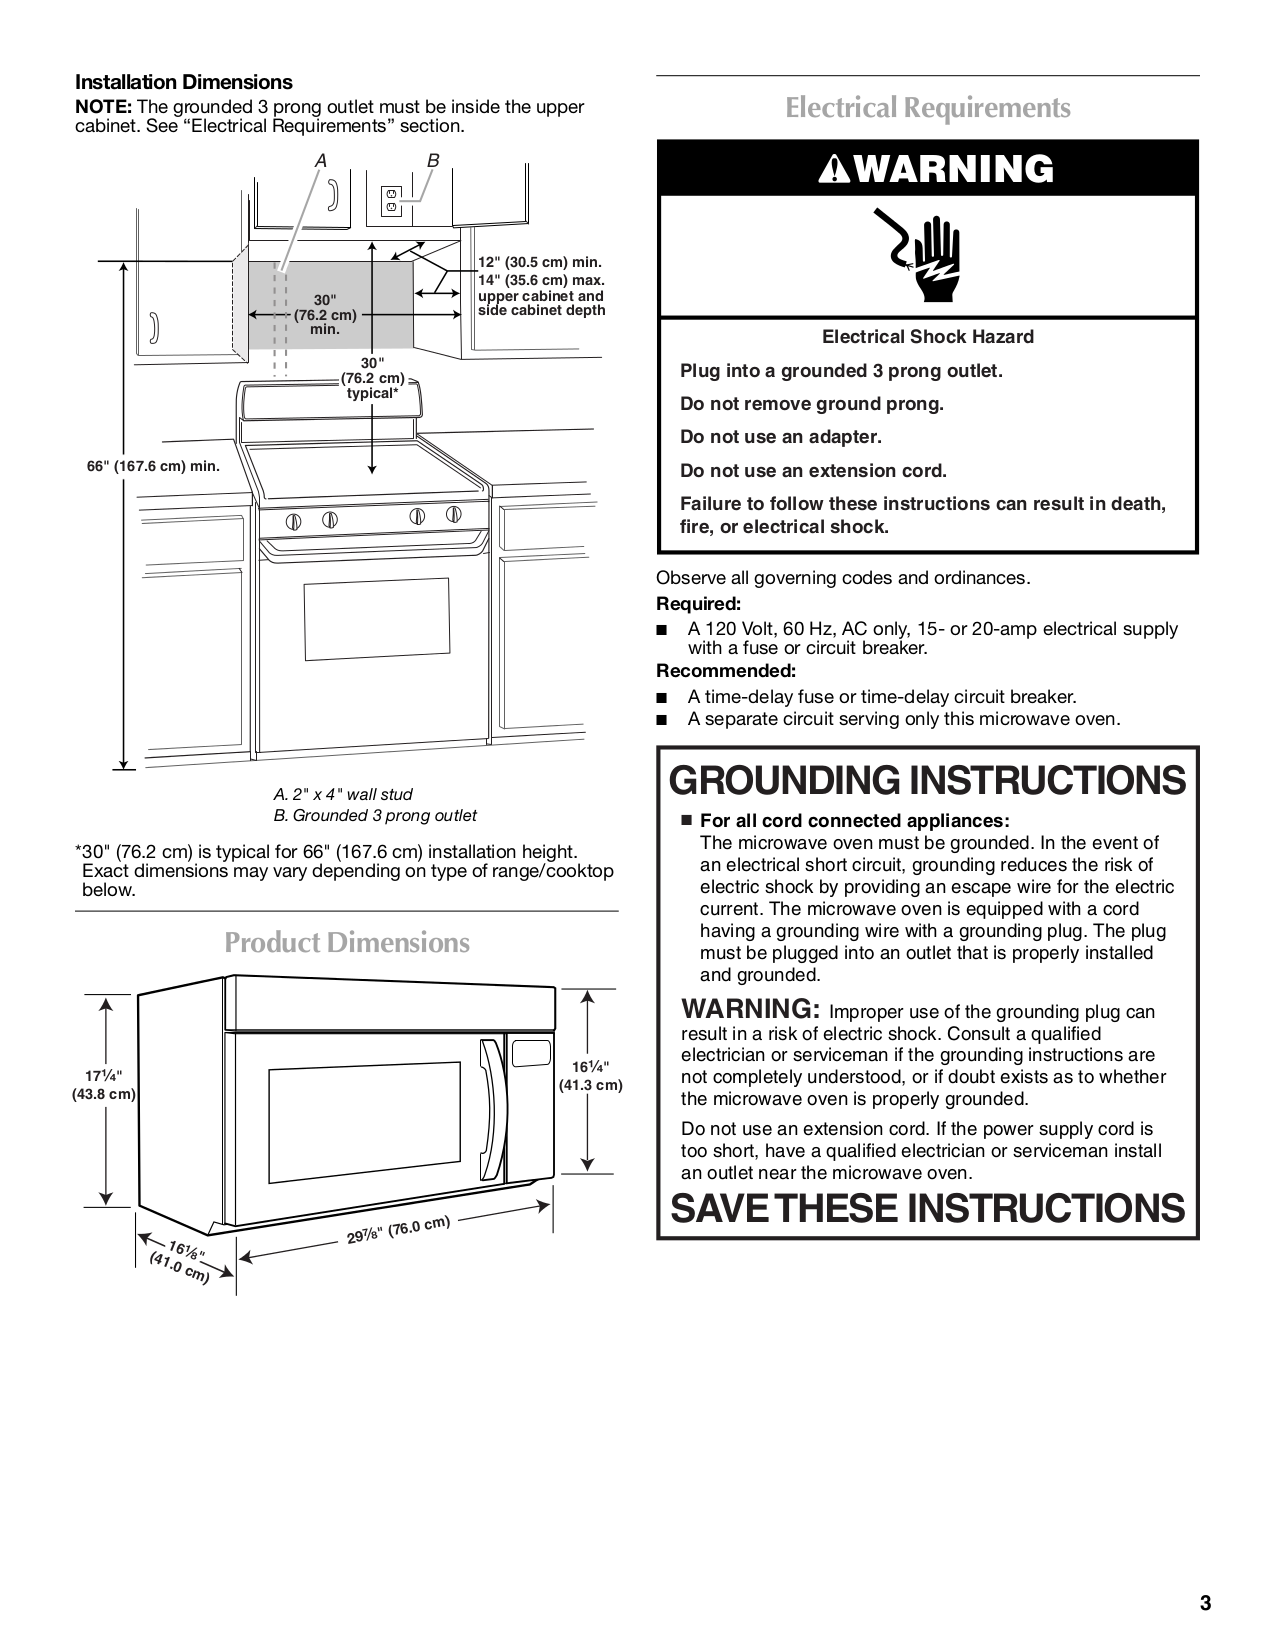 Maytag Microwave Mmv5208ws Pdf Page Preview